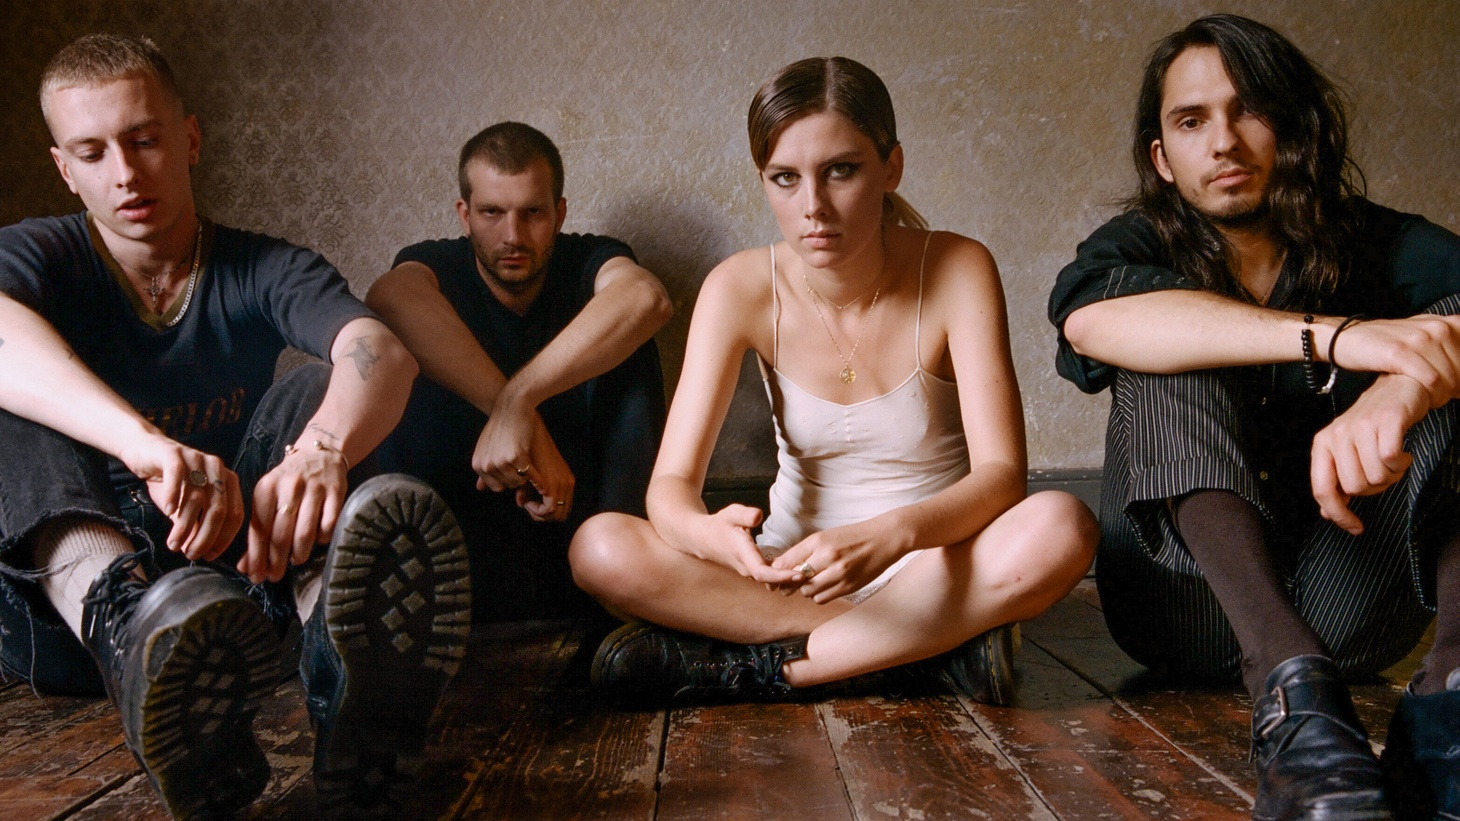 One album we've been anticipating this year is the sophomore release by Wolf Alice. After selling out the West Coast leg of their tour this month, the London-based rockers will be back in the Southland in early October at Cal Jam in San Bernardino.